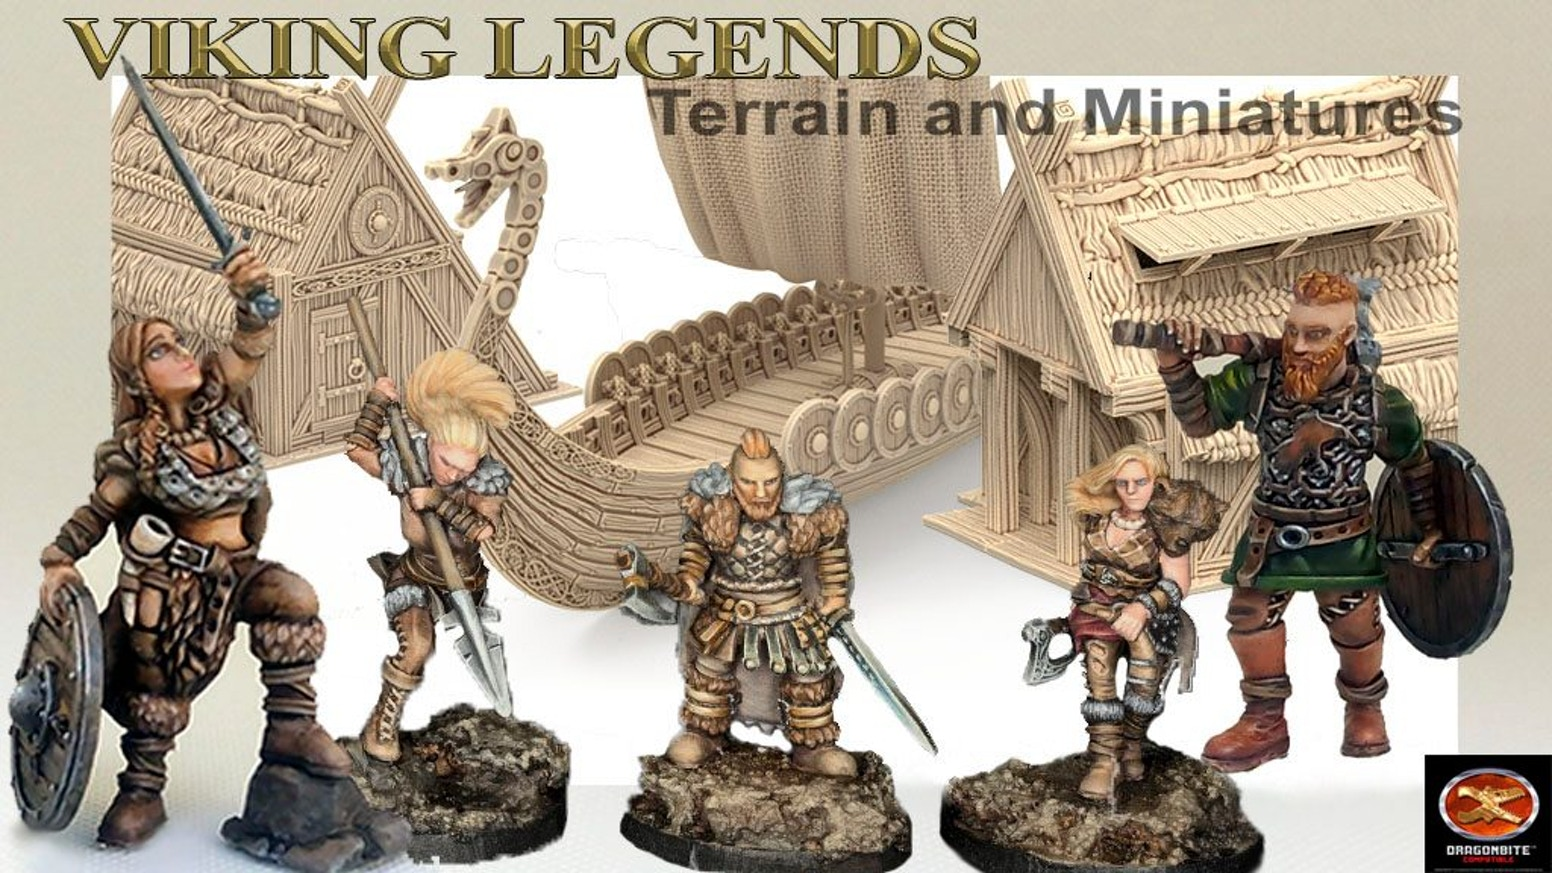 3D Printable STL Miniature Files and Terrain for your Table Top Role Playing Games. Featuring Viking and Epic Historic Terrain.